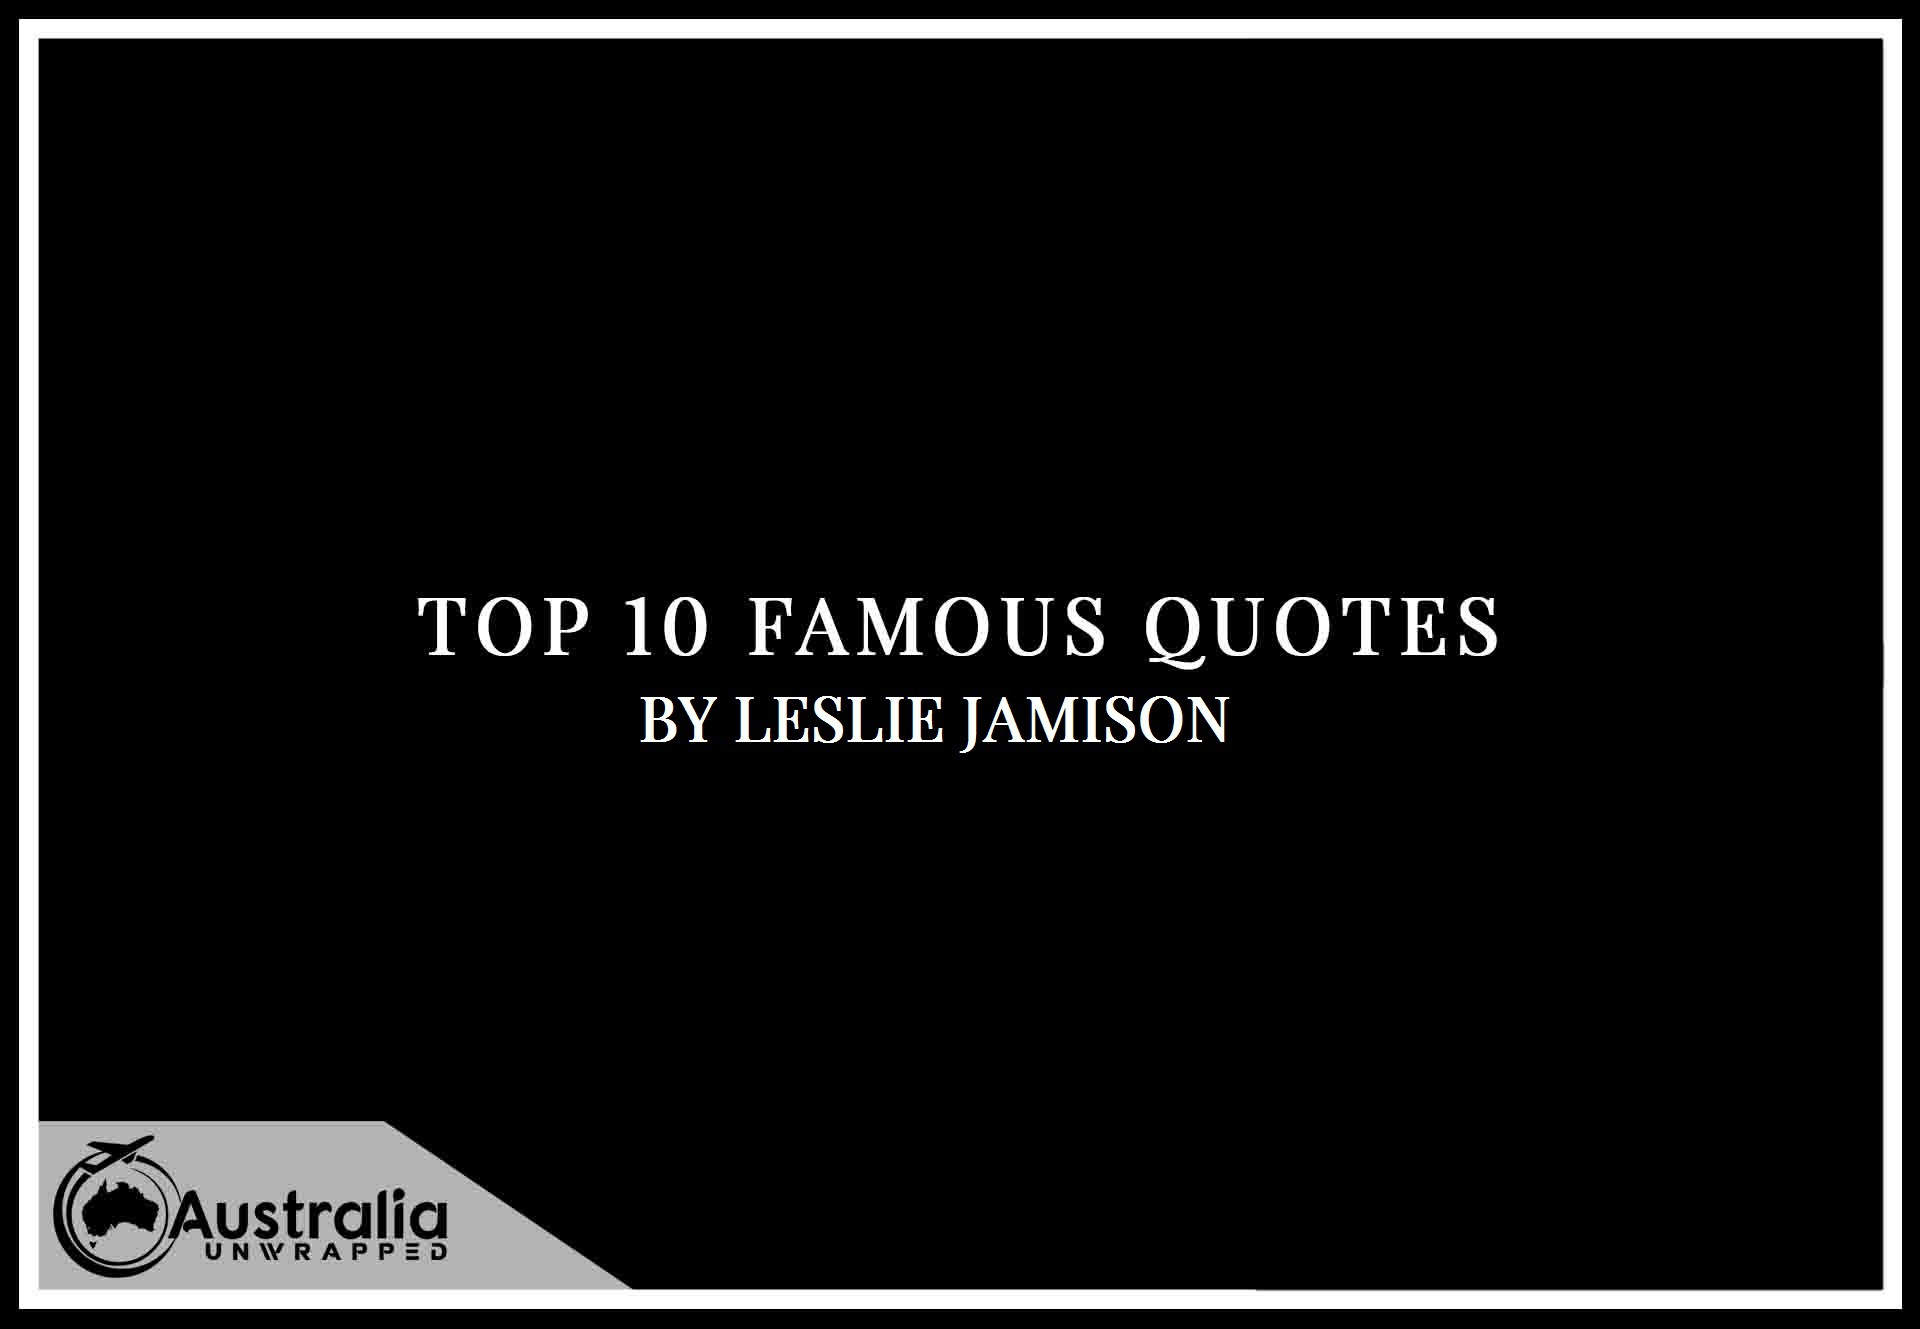 Leslie Jamison's Top 10 Popular and Famous Quotes